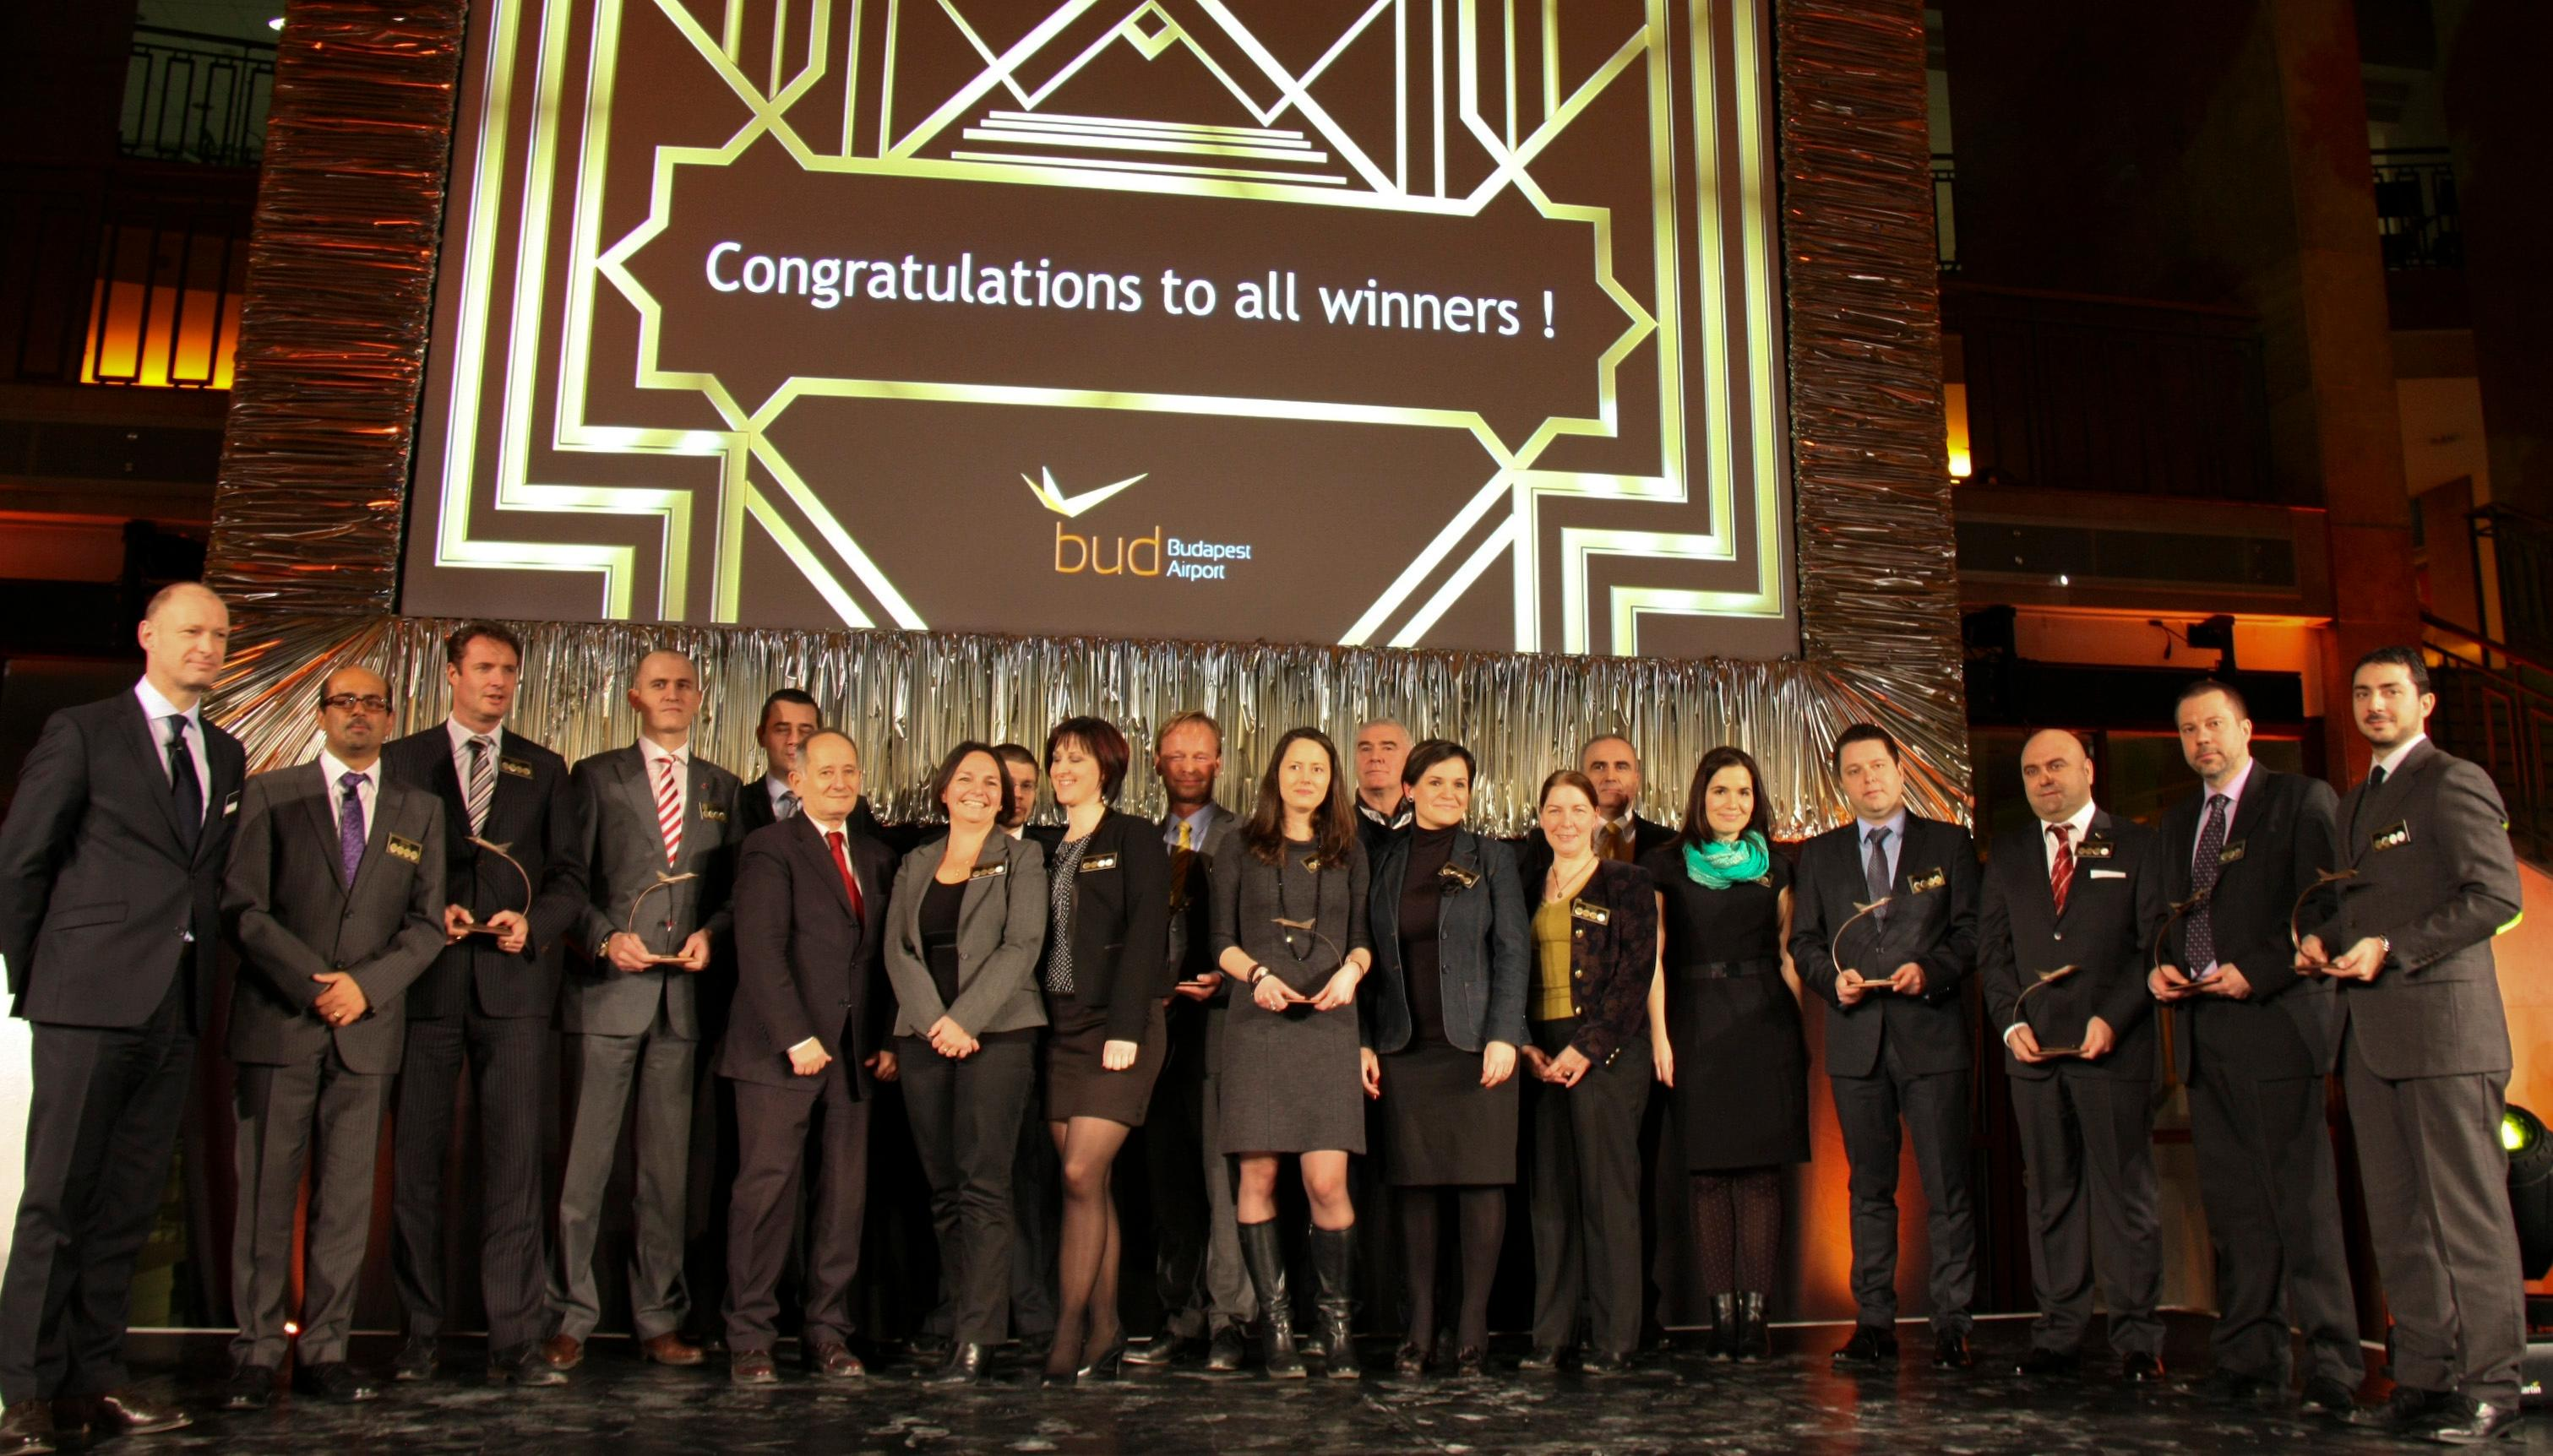 Award Winners At 7th Annual Aviation Awards Gala In Budapest